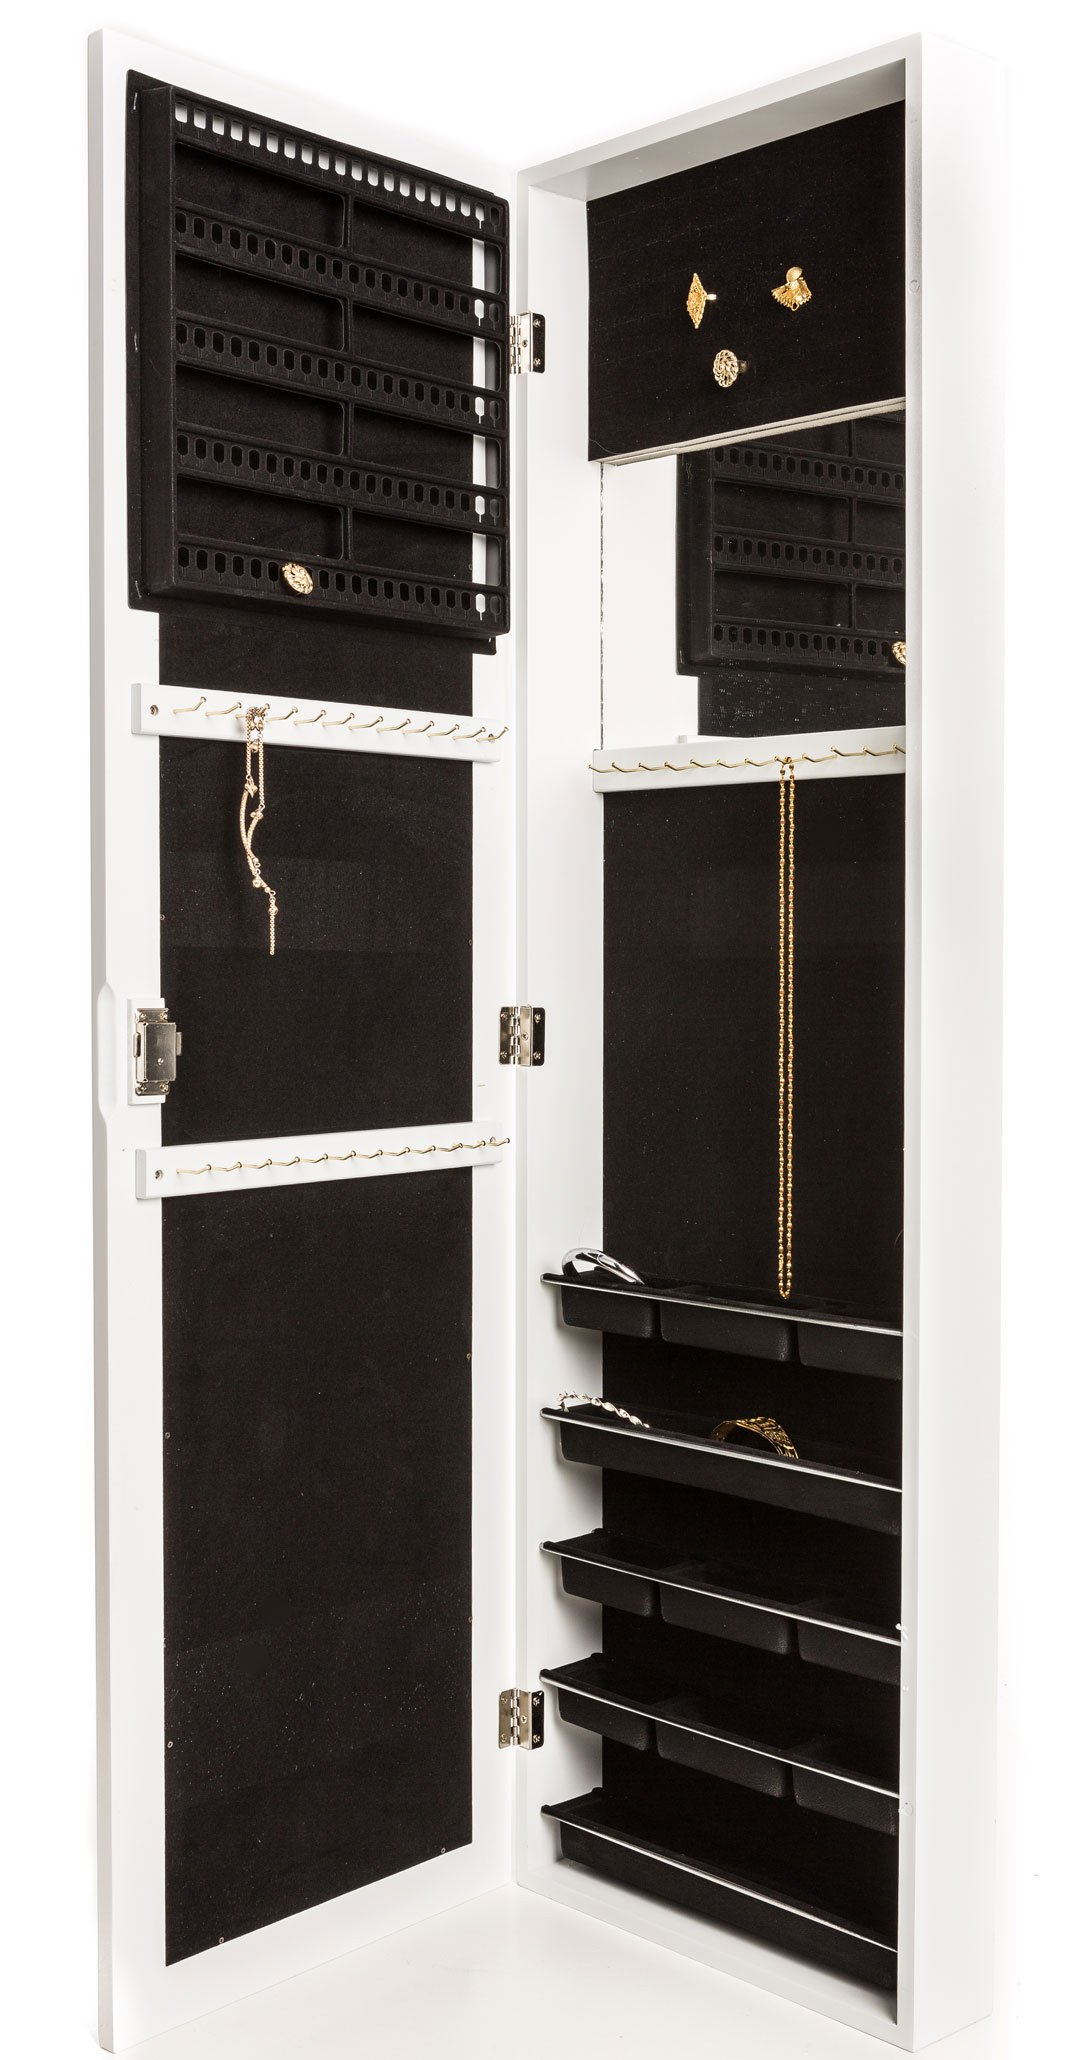 Locking Jewelry Armoire with Mirror - Wall Mount or Hanging Over the Door by Perfect Life Ideas (White - New)